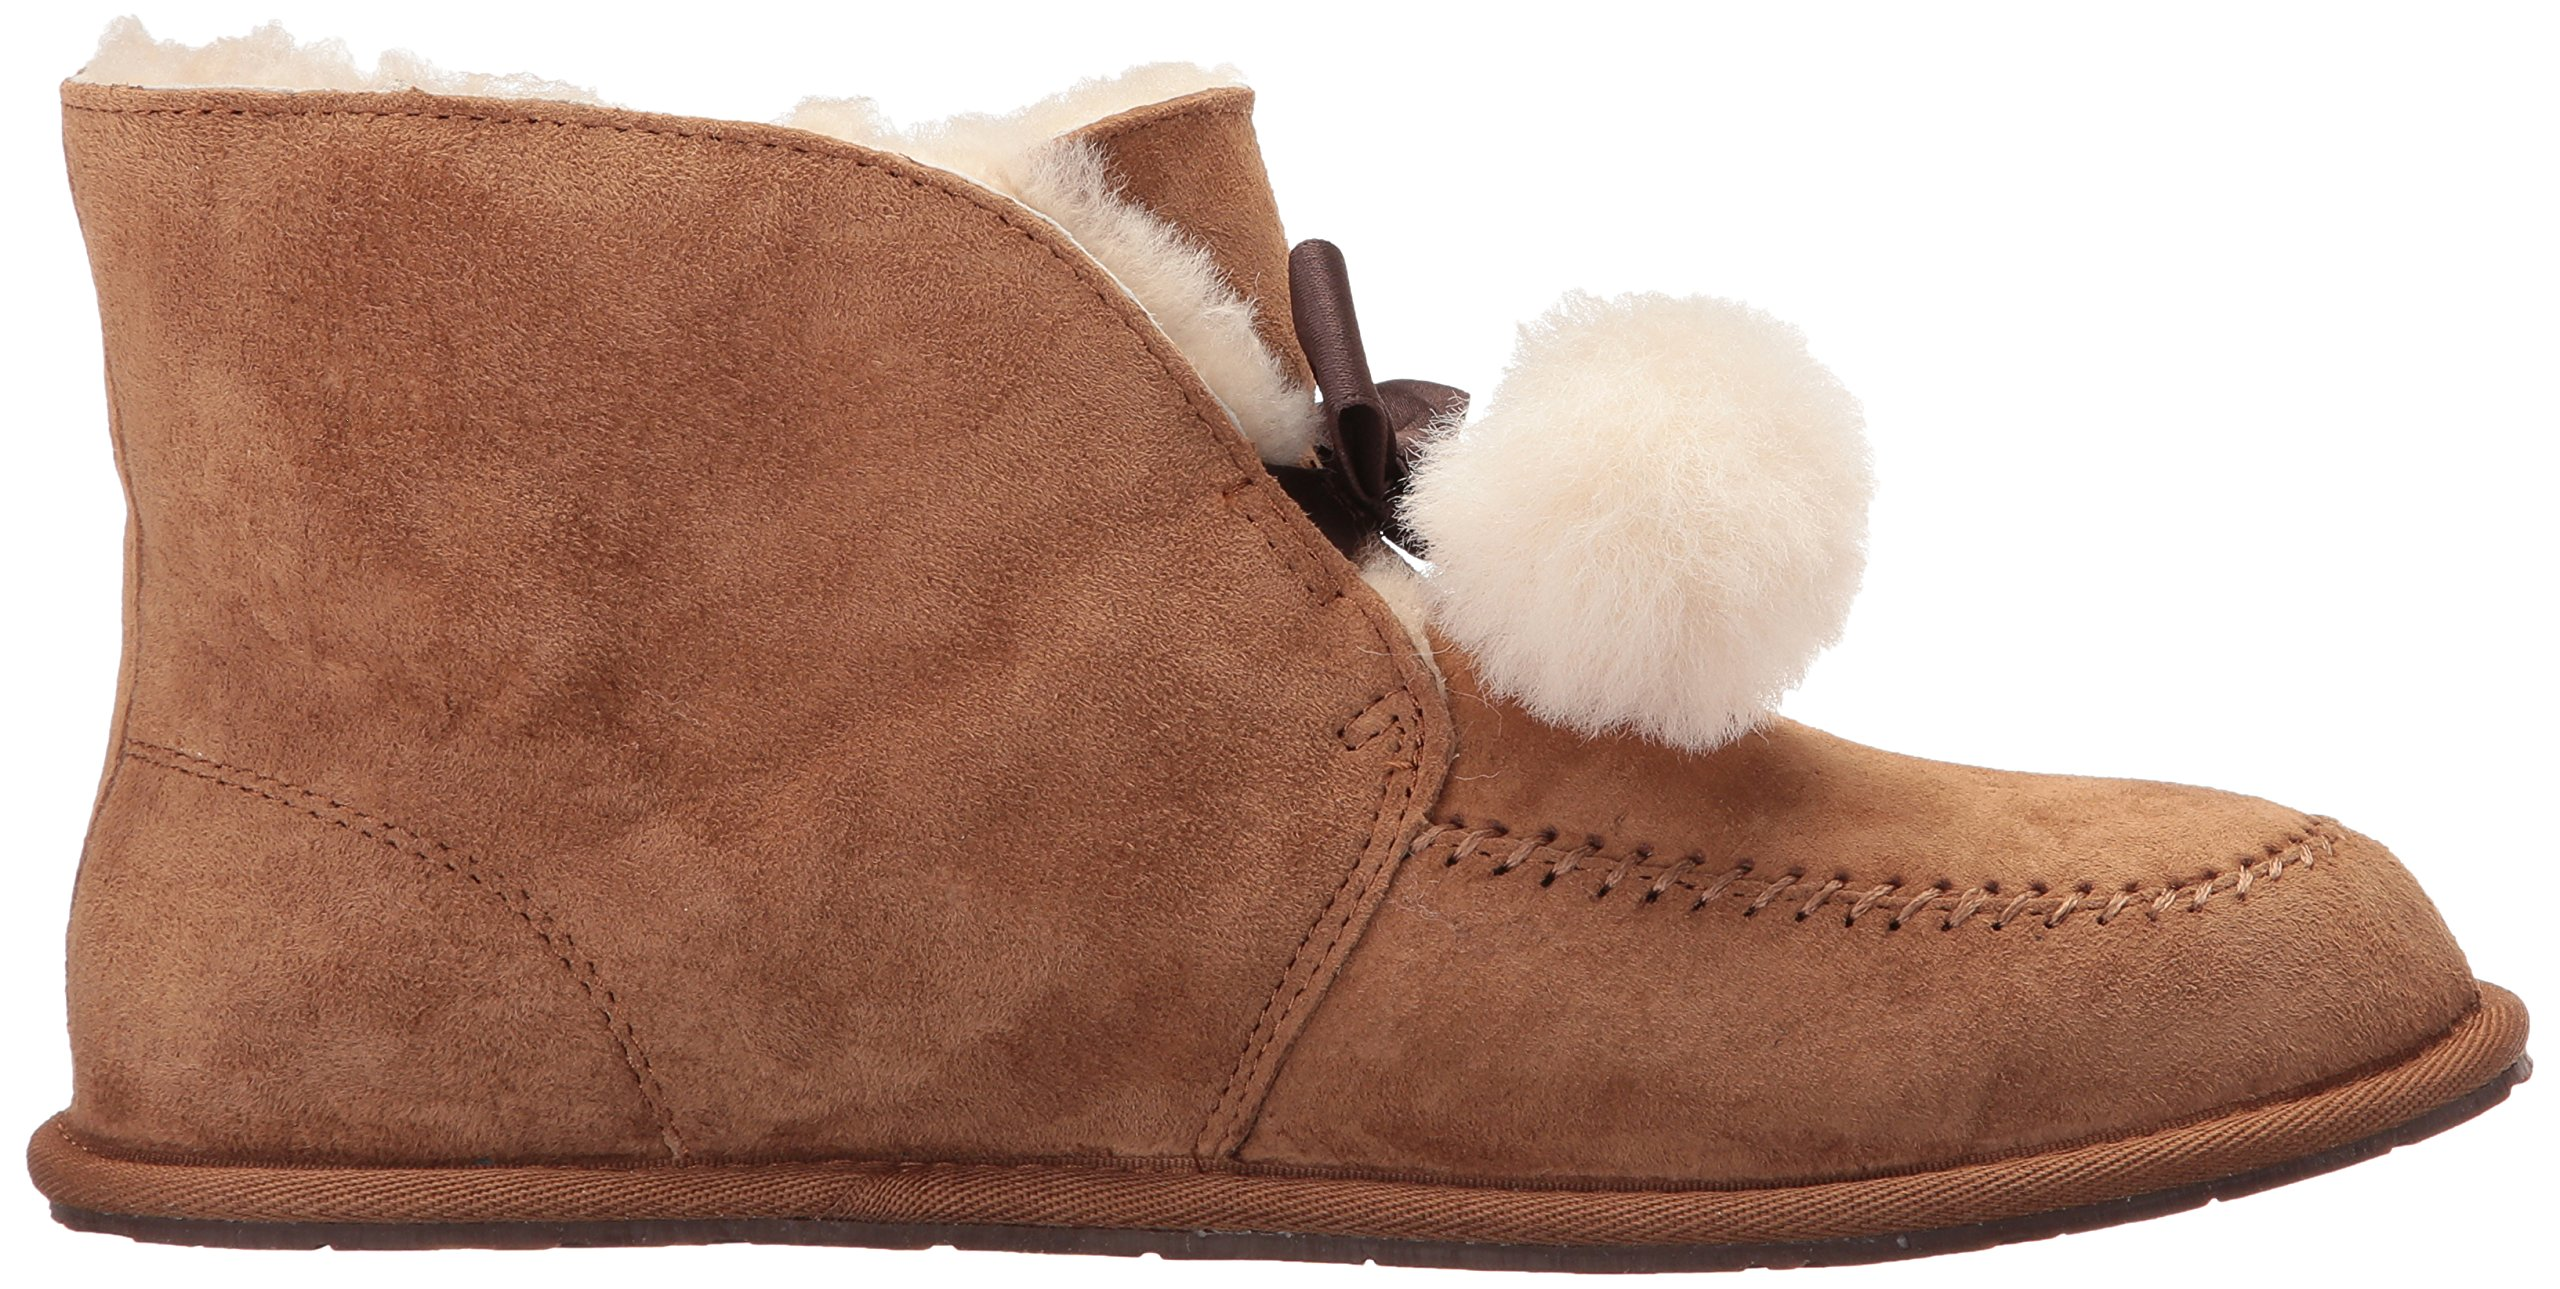 UGG Women's Kallen Slouch Boot, Chestnut, 8 M US by UGG (Image #7)